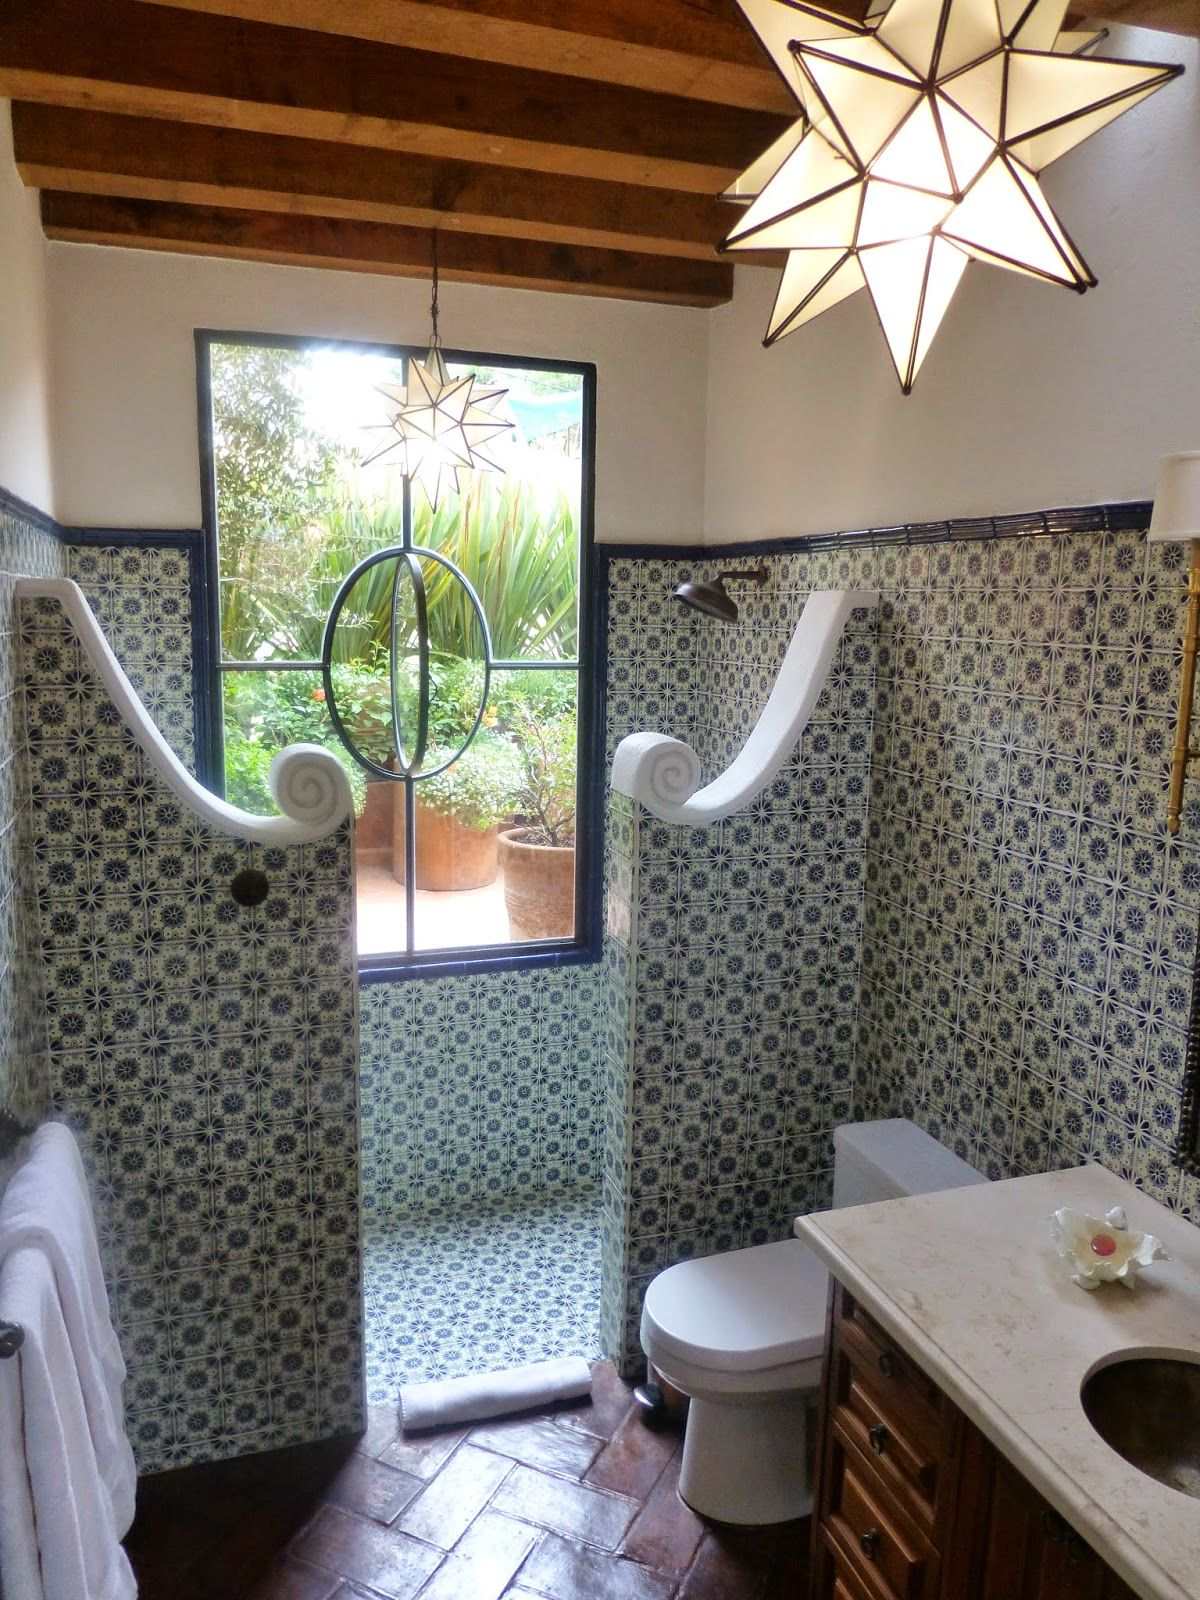 Outdoor Decorative Tiles For Walls Awesome 20 Spanish Style Homes From Some Country To Inspire You  San Review